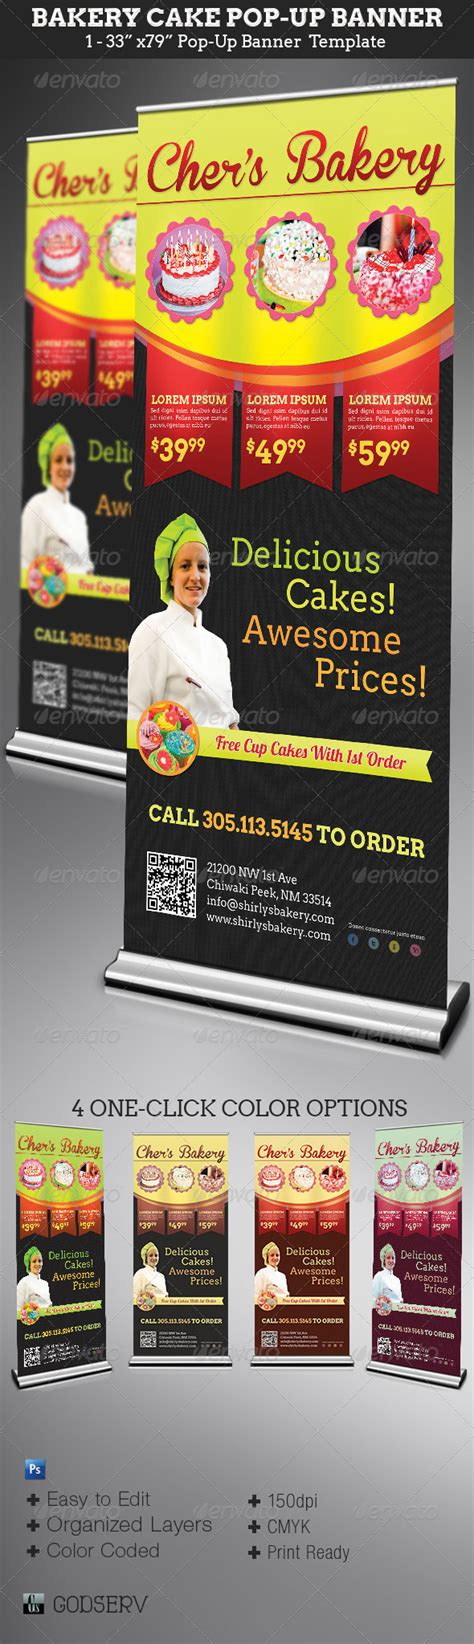 pop up banner template bakery cake pop up banner template graphicriver